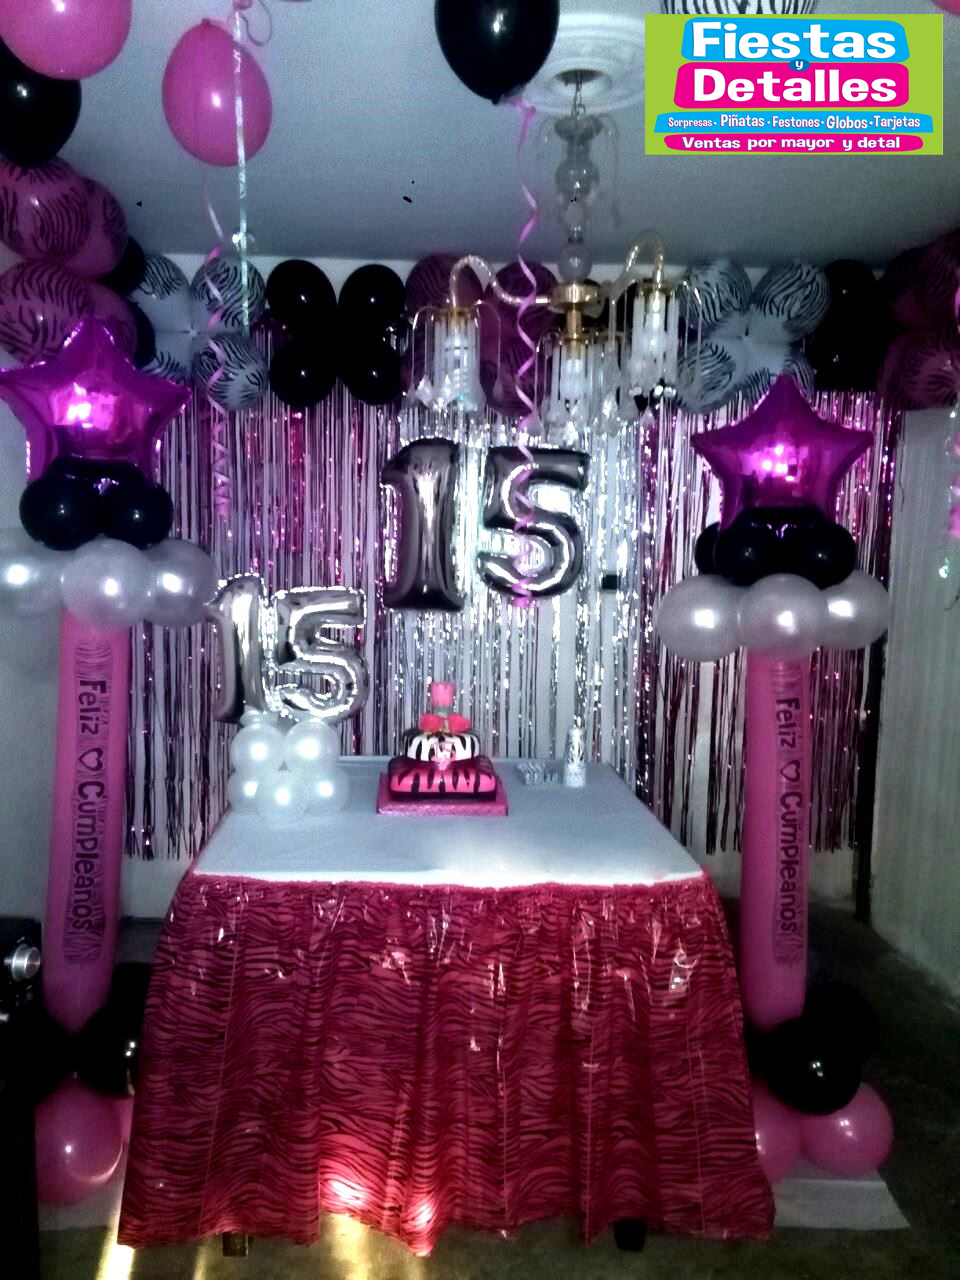 Fiestas y detalles decoracion quince a os for Decoracion para 15 anos 2016